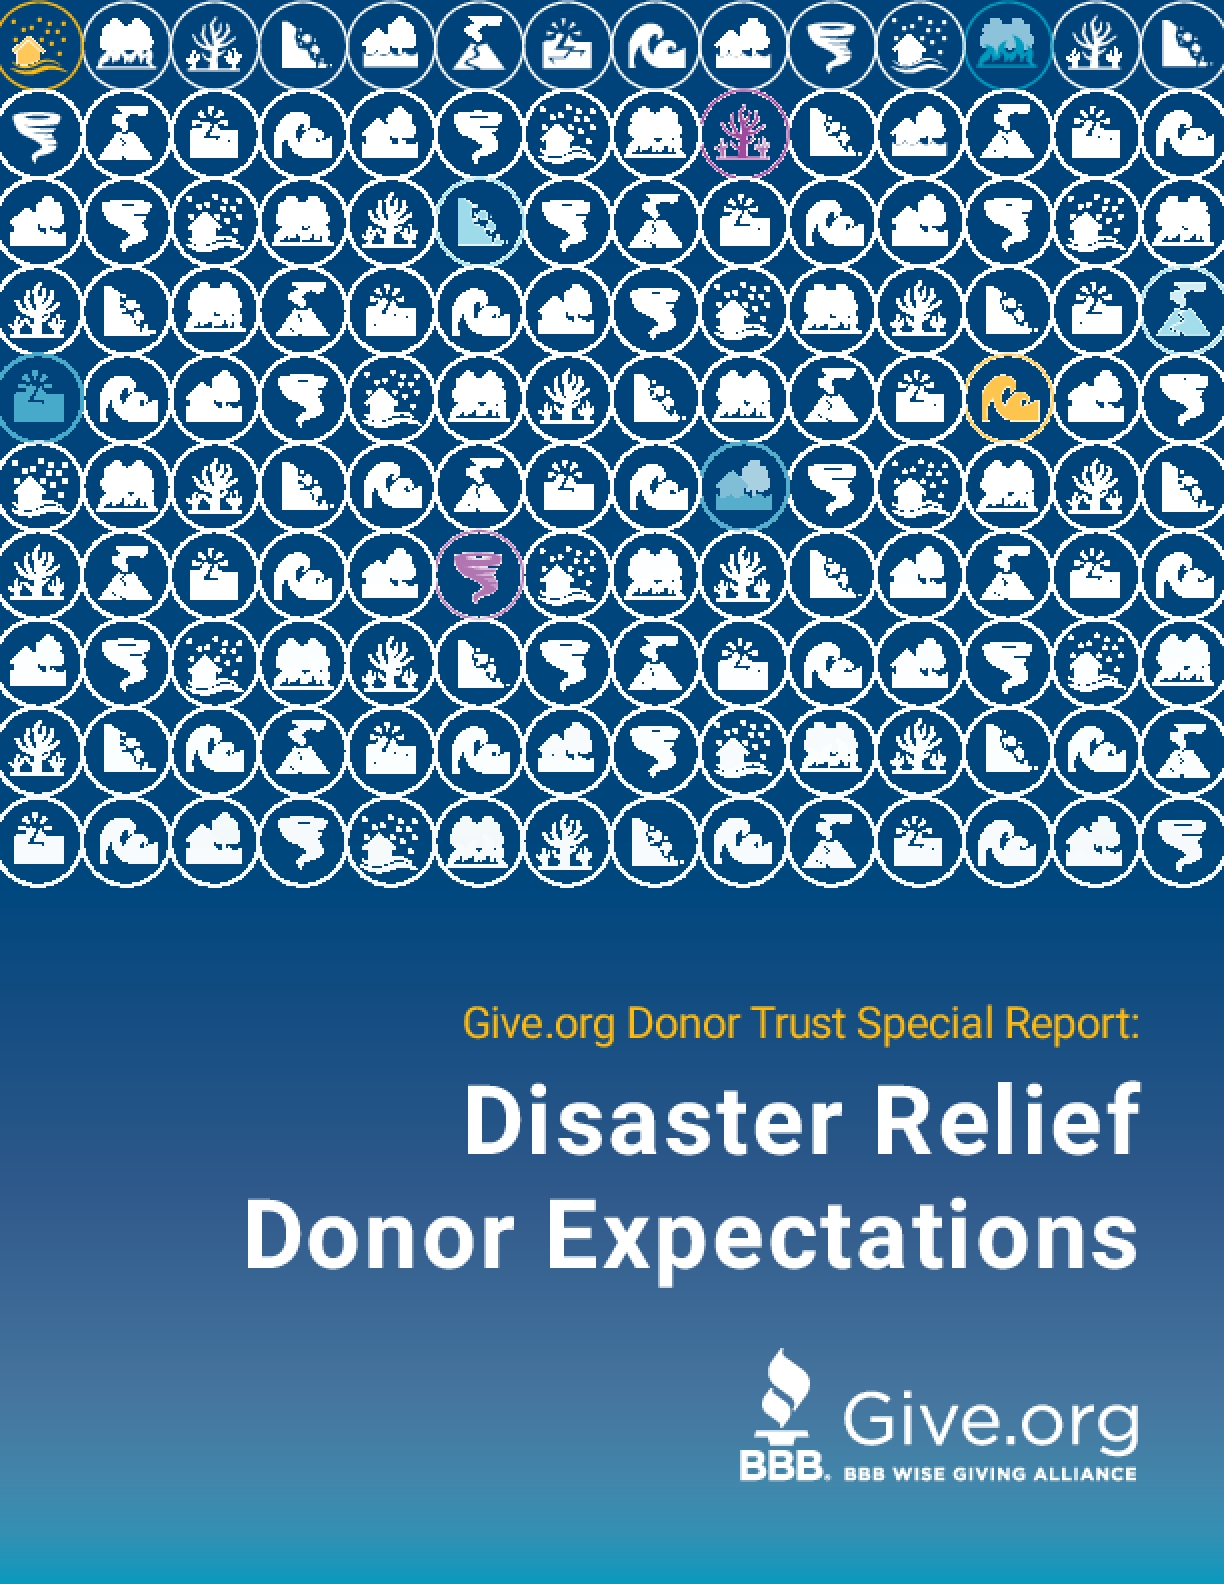 Disaster Relief Donor Expectations